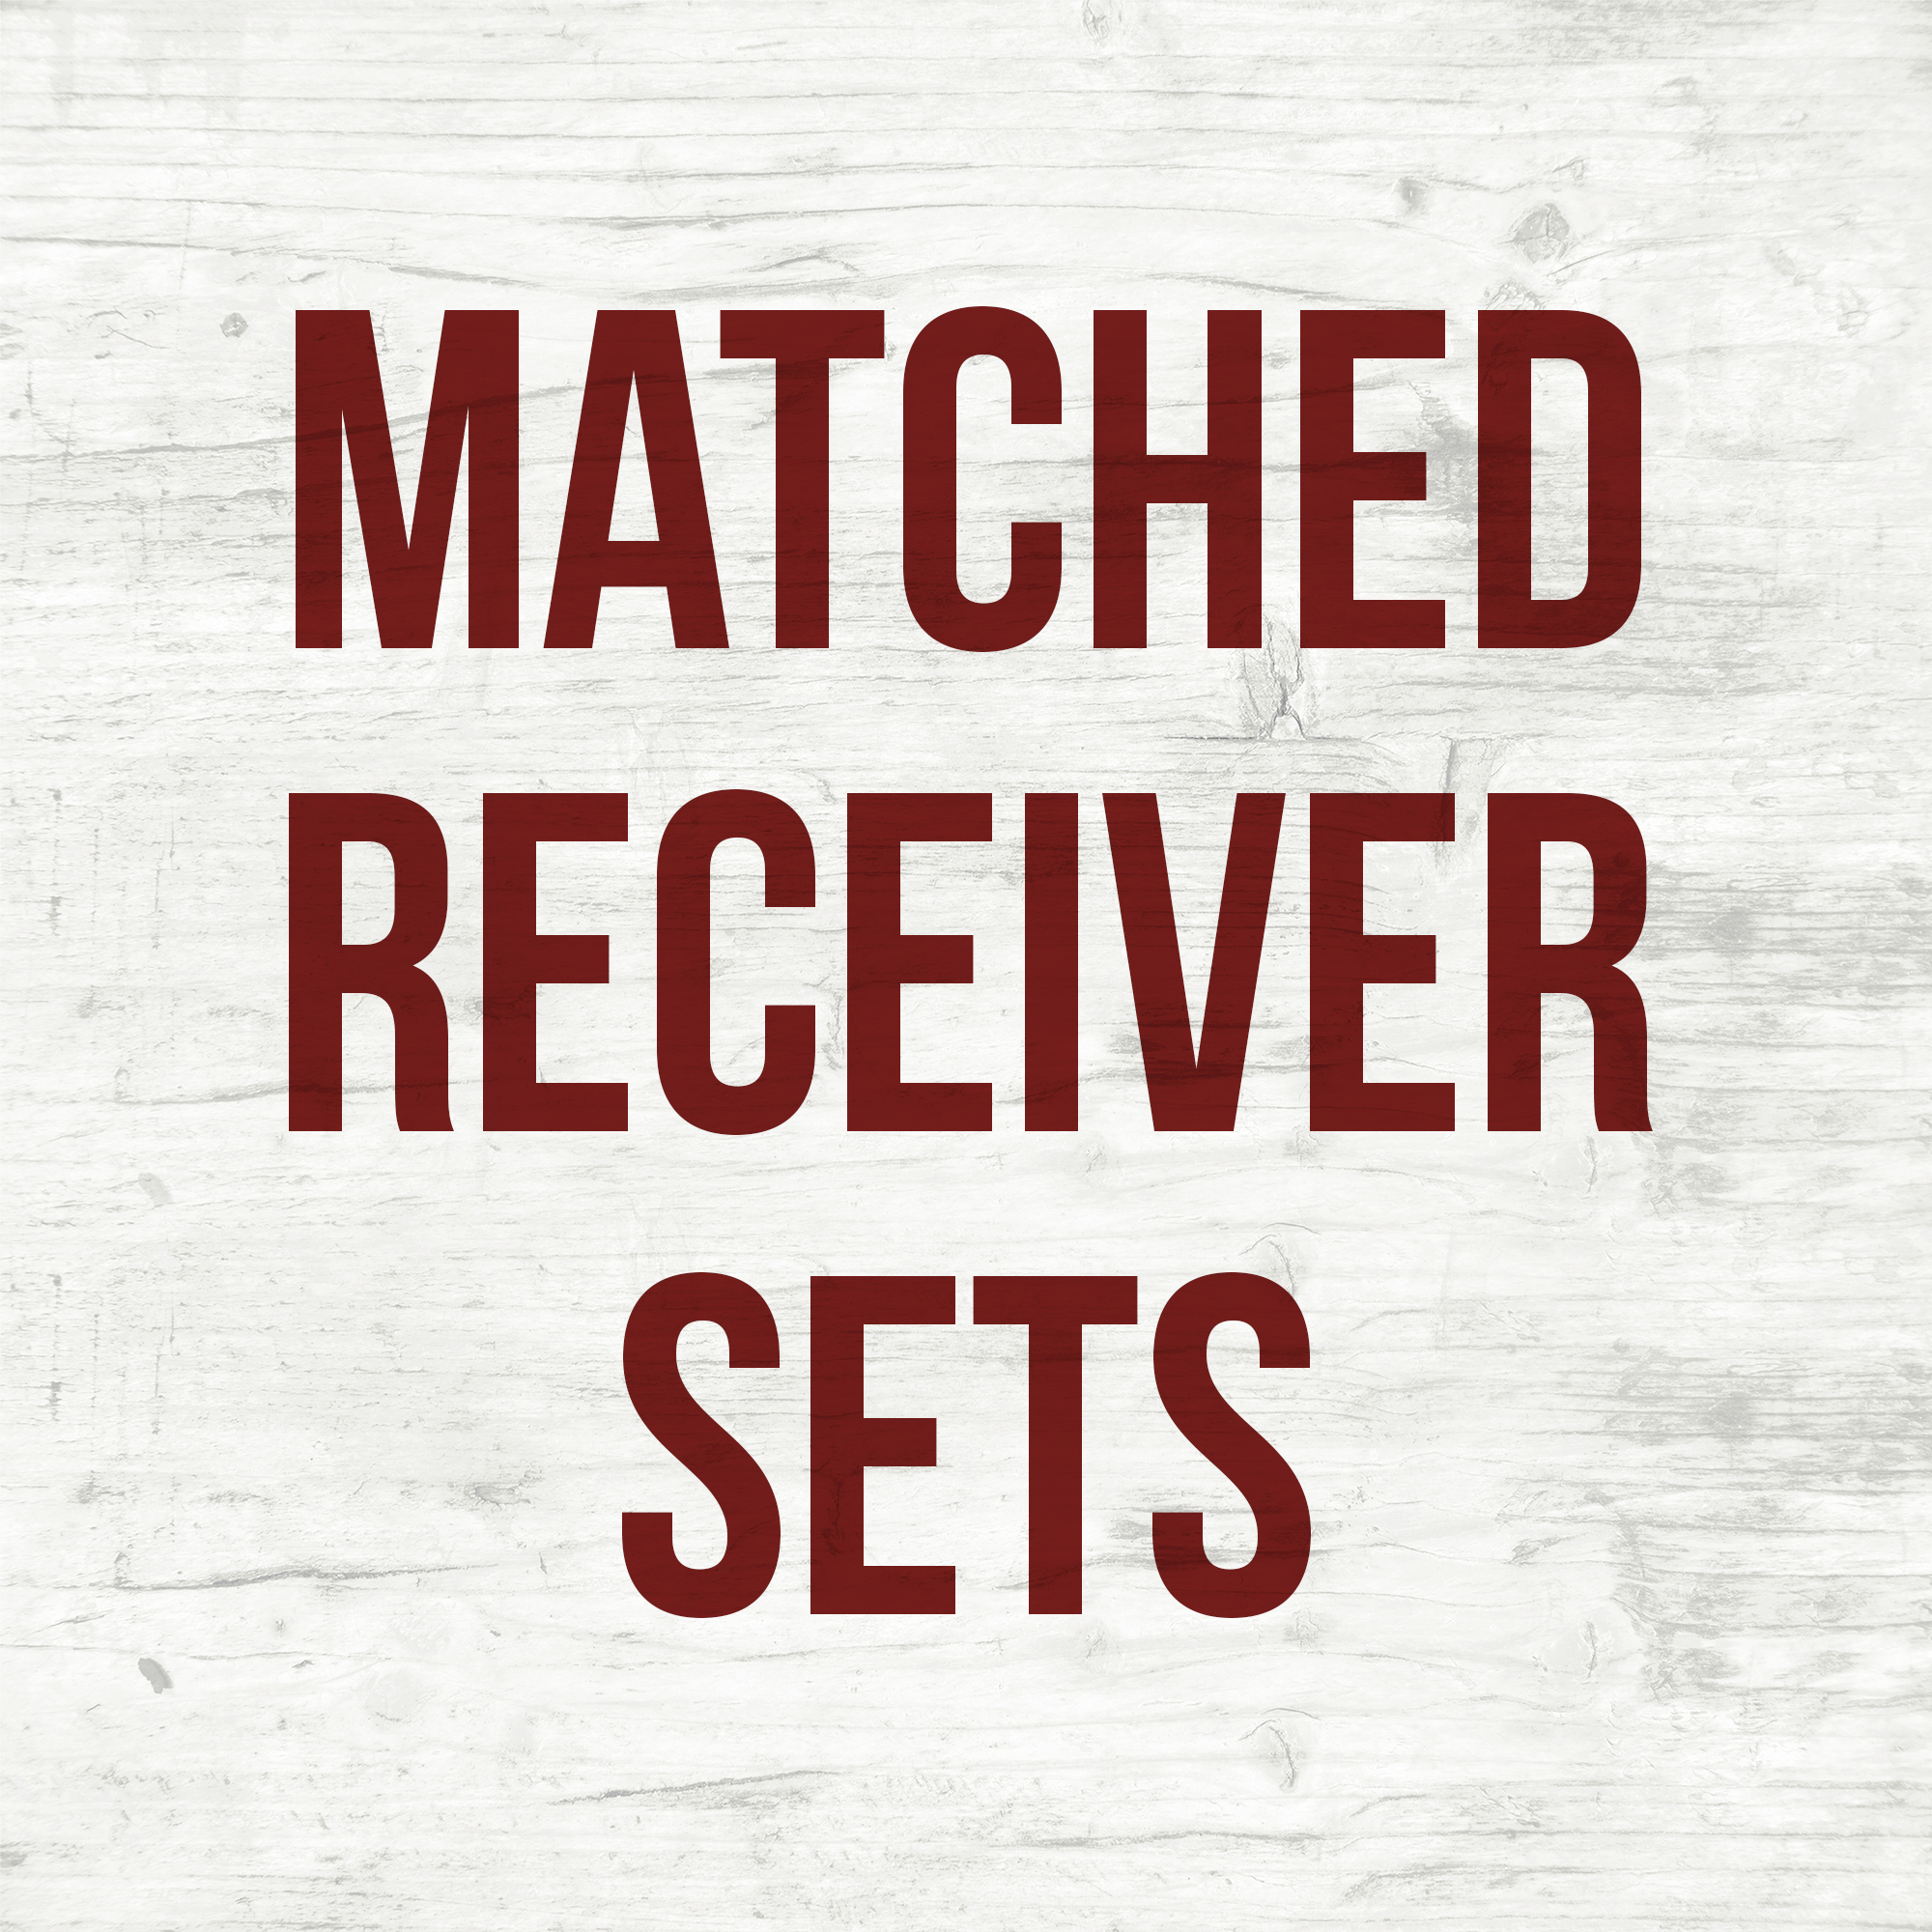 Matched Receiver Sets